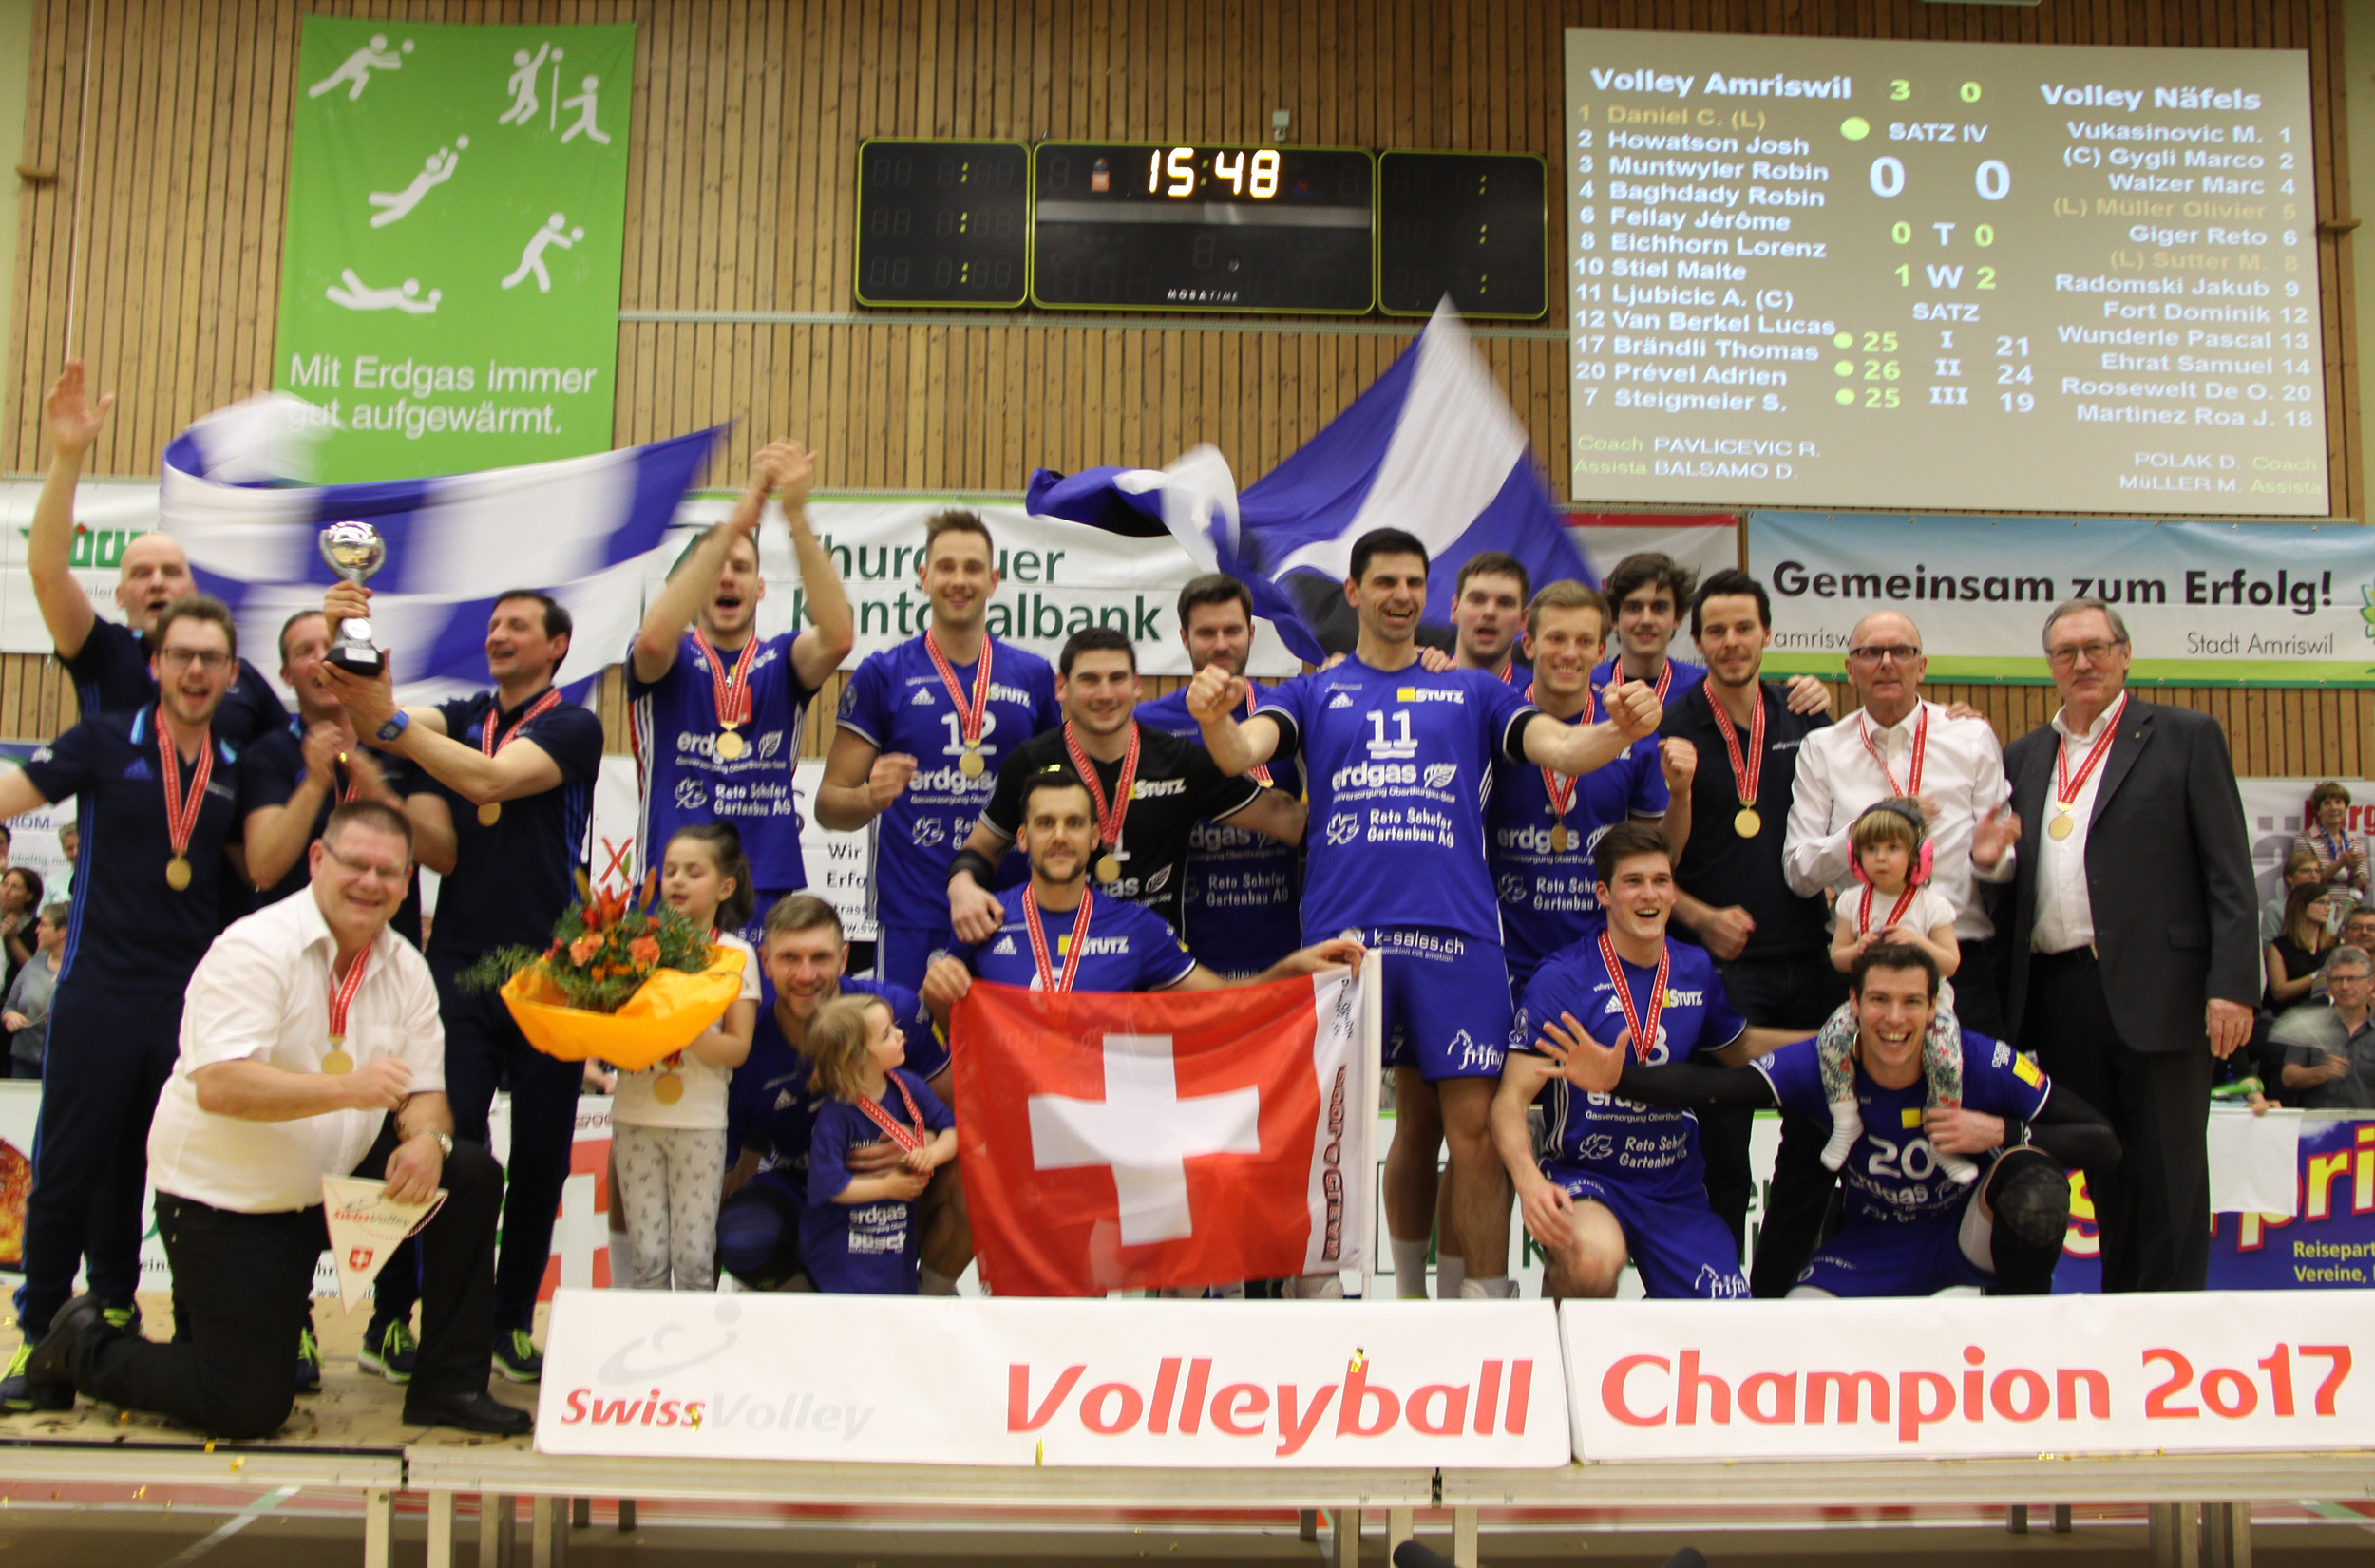 Volley Amriswil holt das Double!